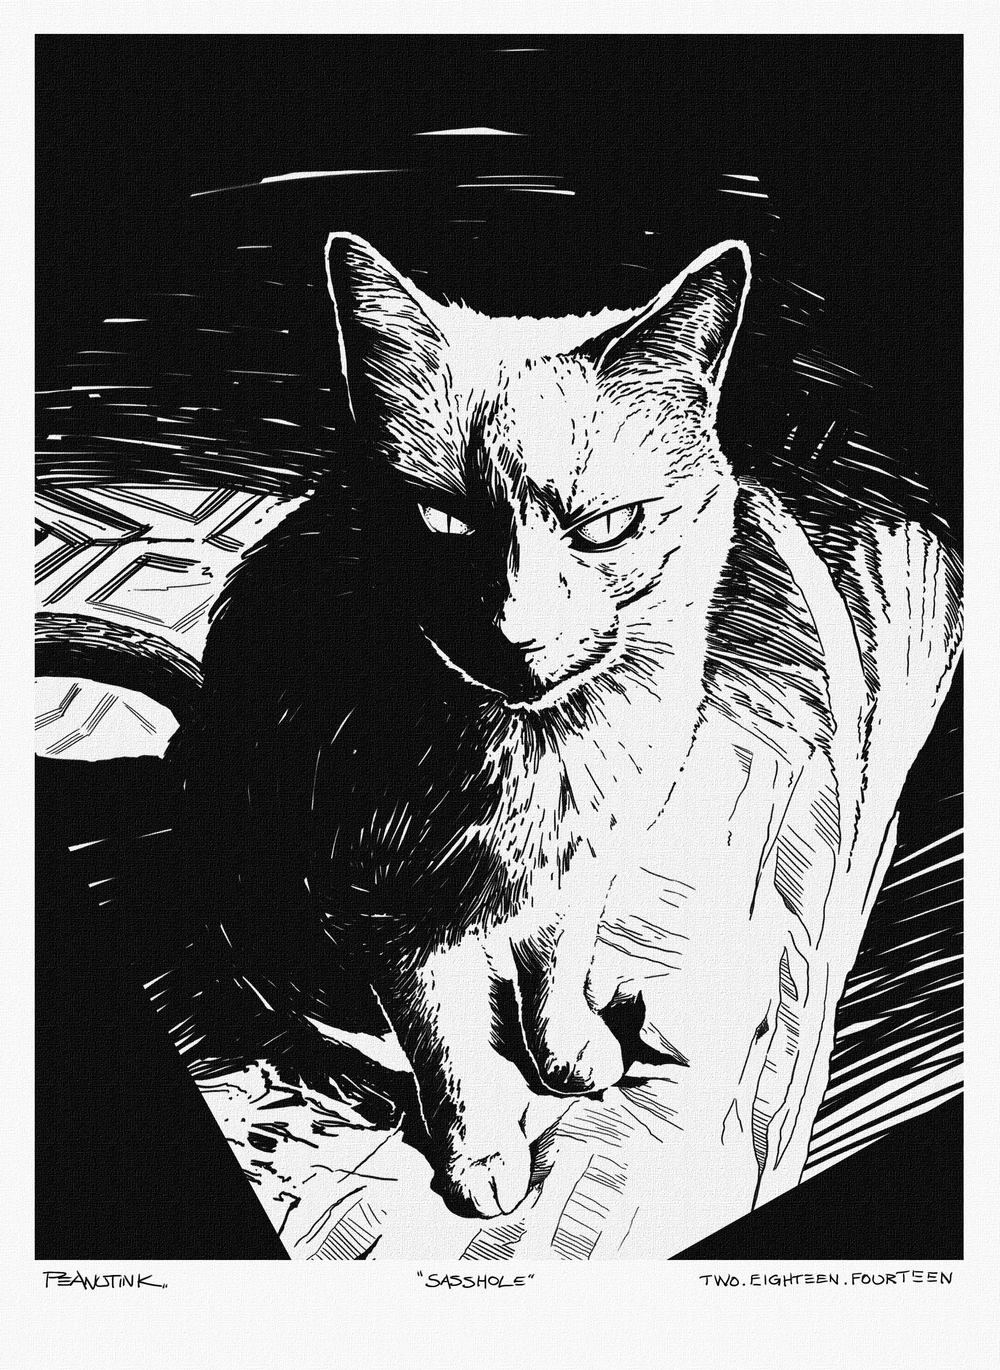 ...weekly sketch #7 of my cat Dignan...